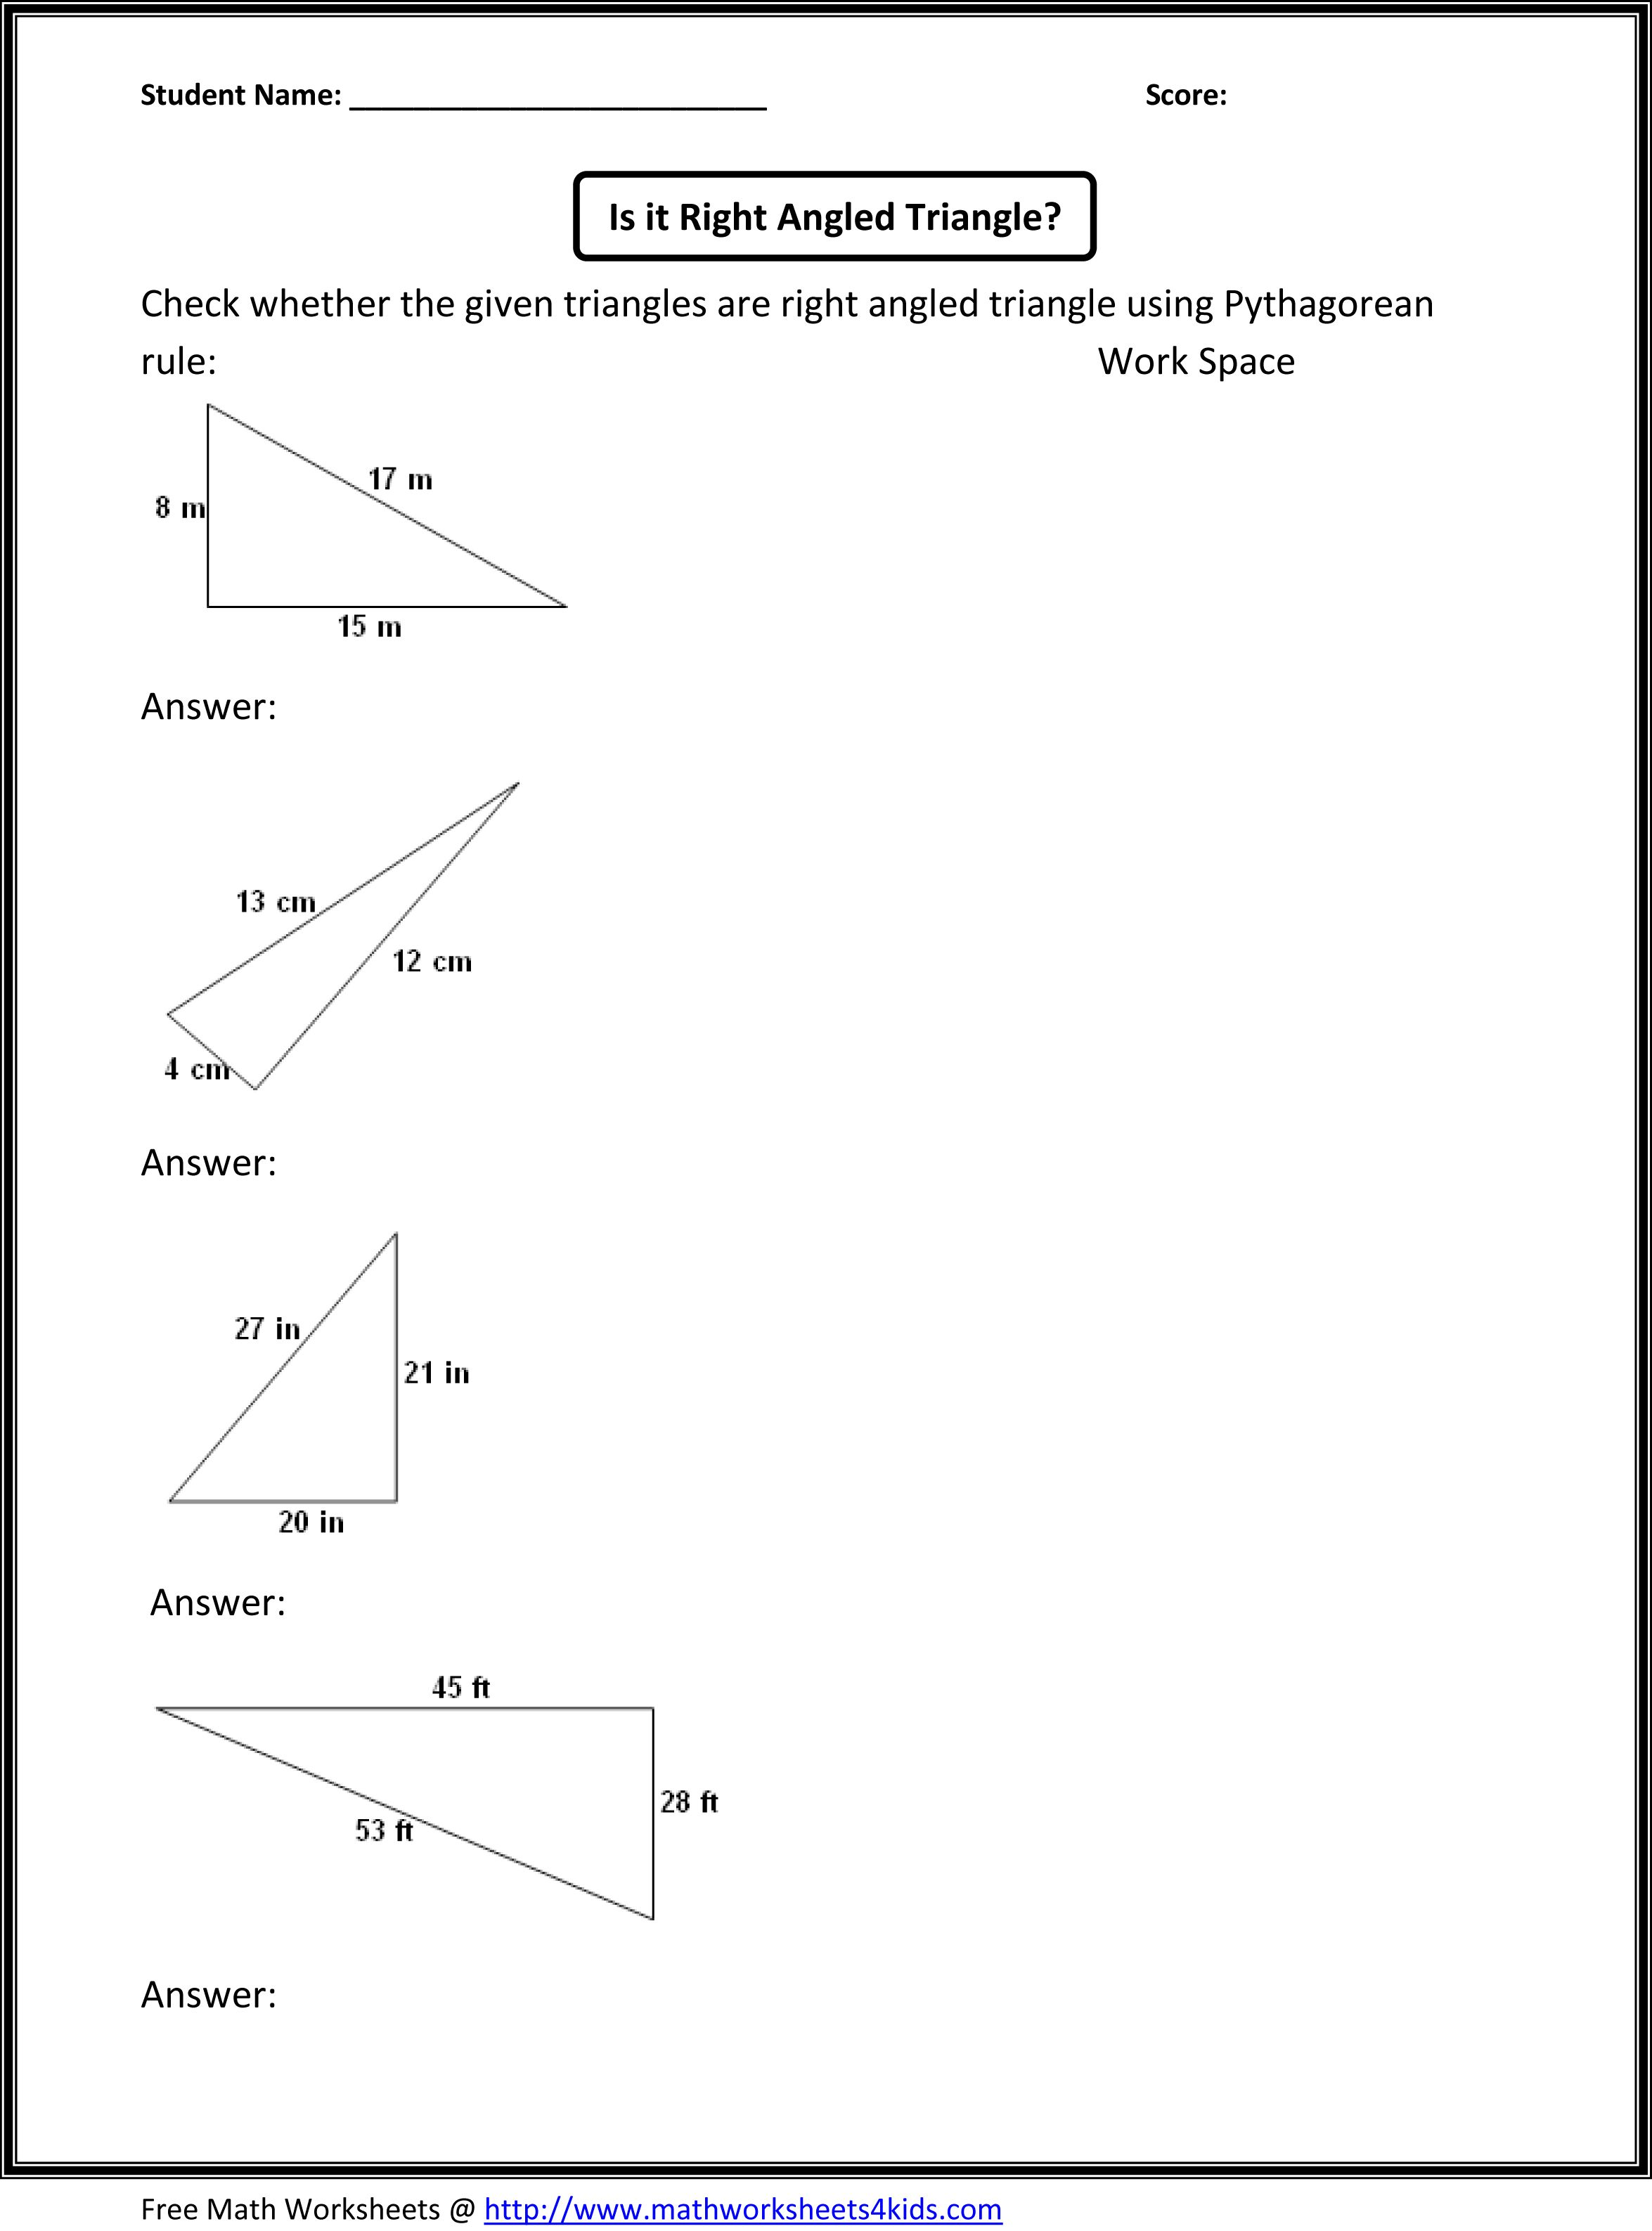 Pythagorean theorem worksheet – High School Algebra Worksheets